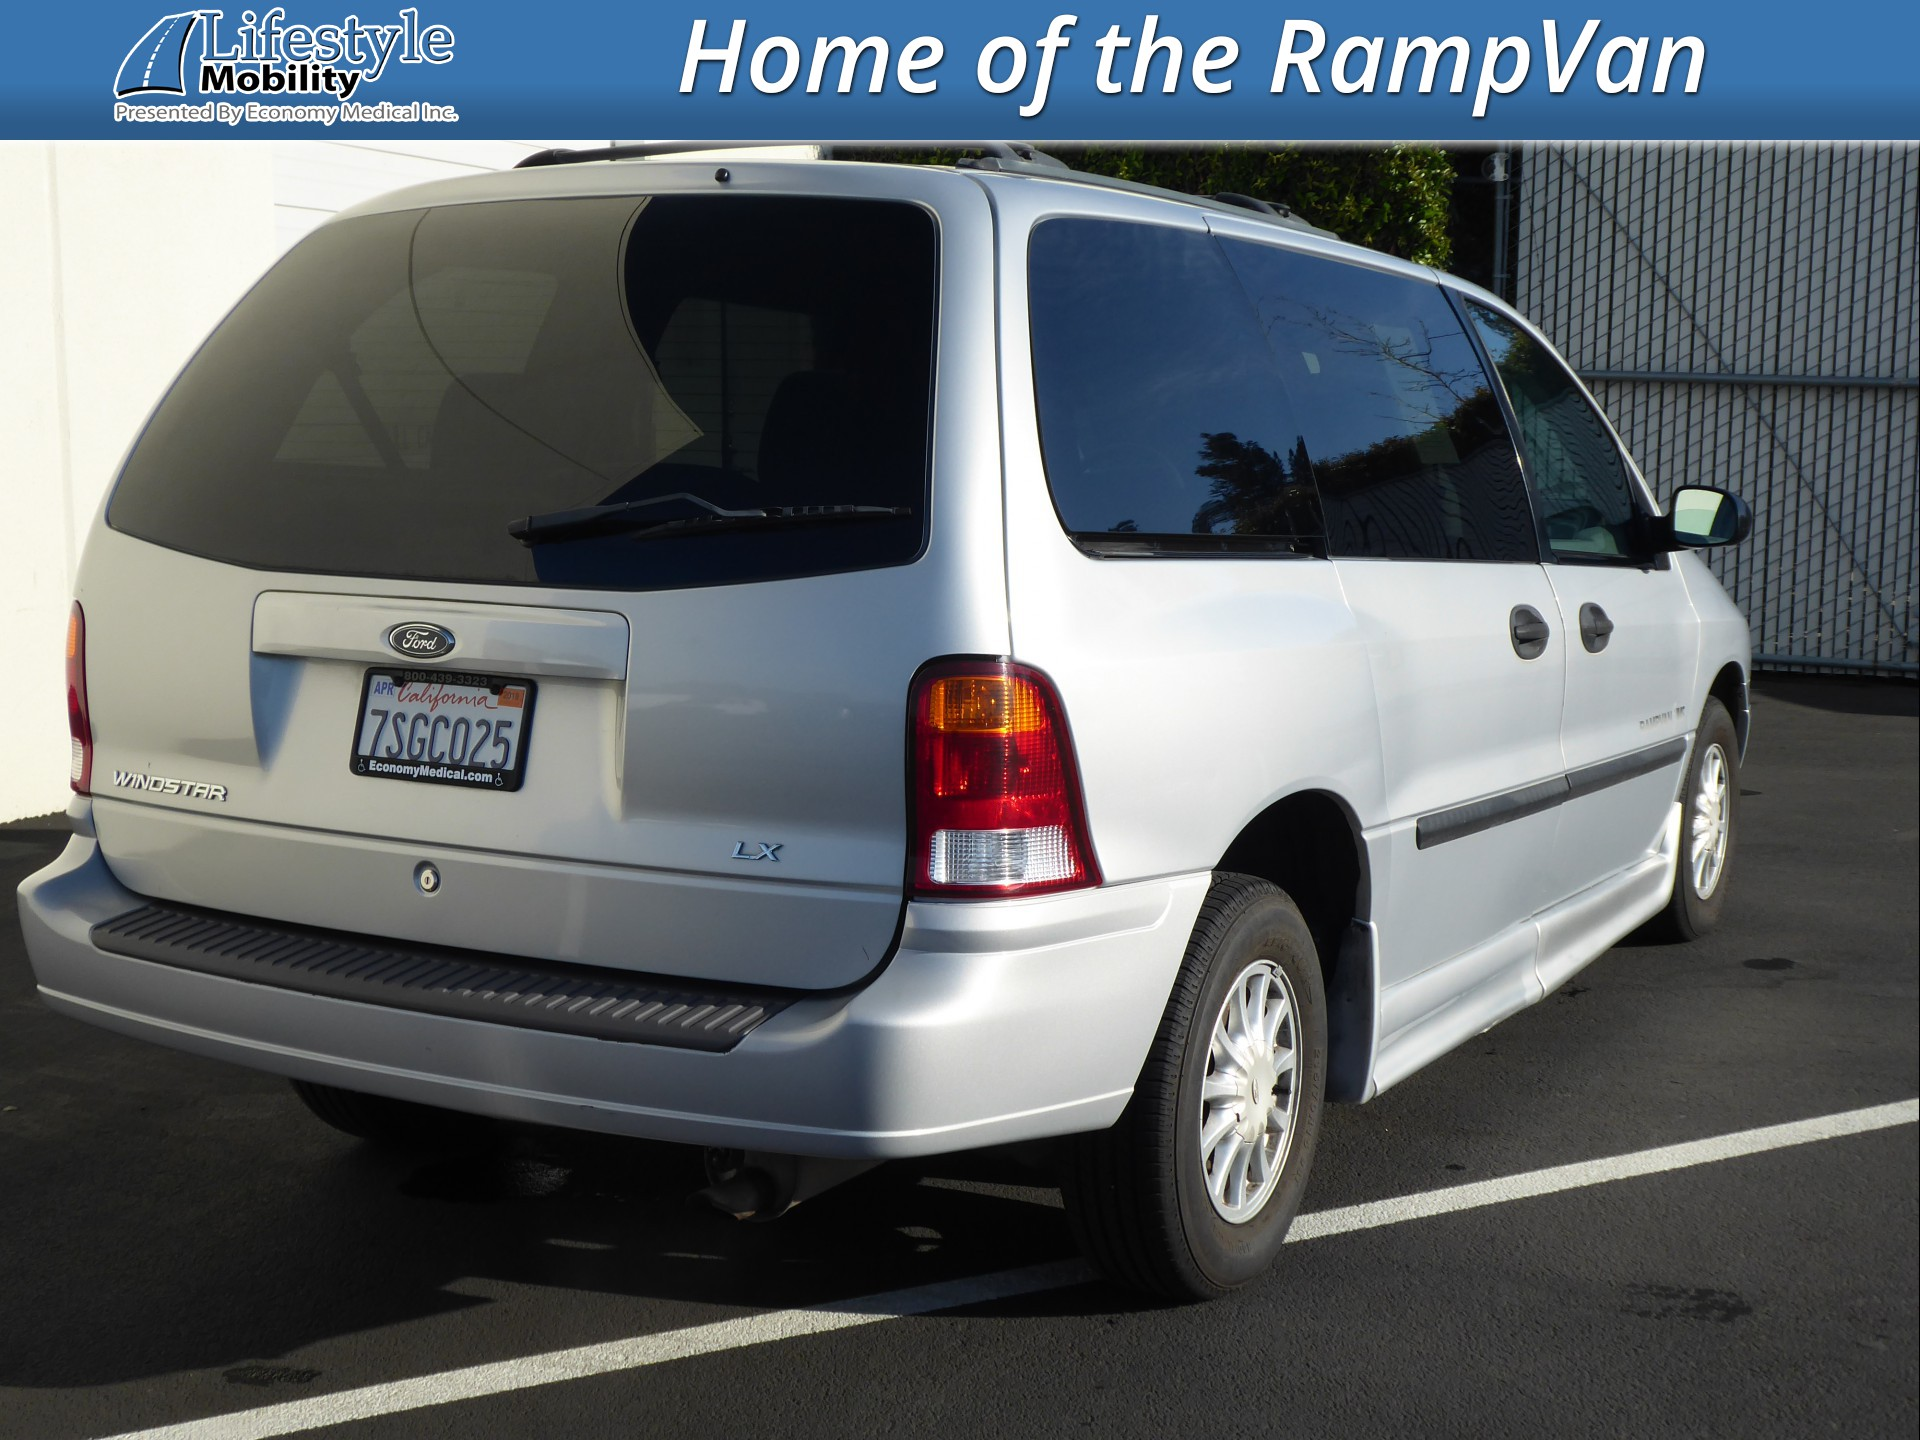 wheelchair van for sale 2002 ford windstar stock 2bb36420 lifestyle mobility lifestyle mobility